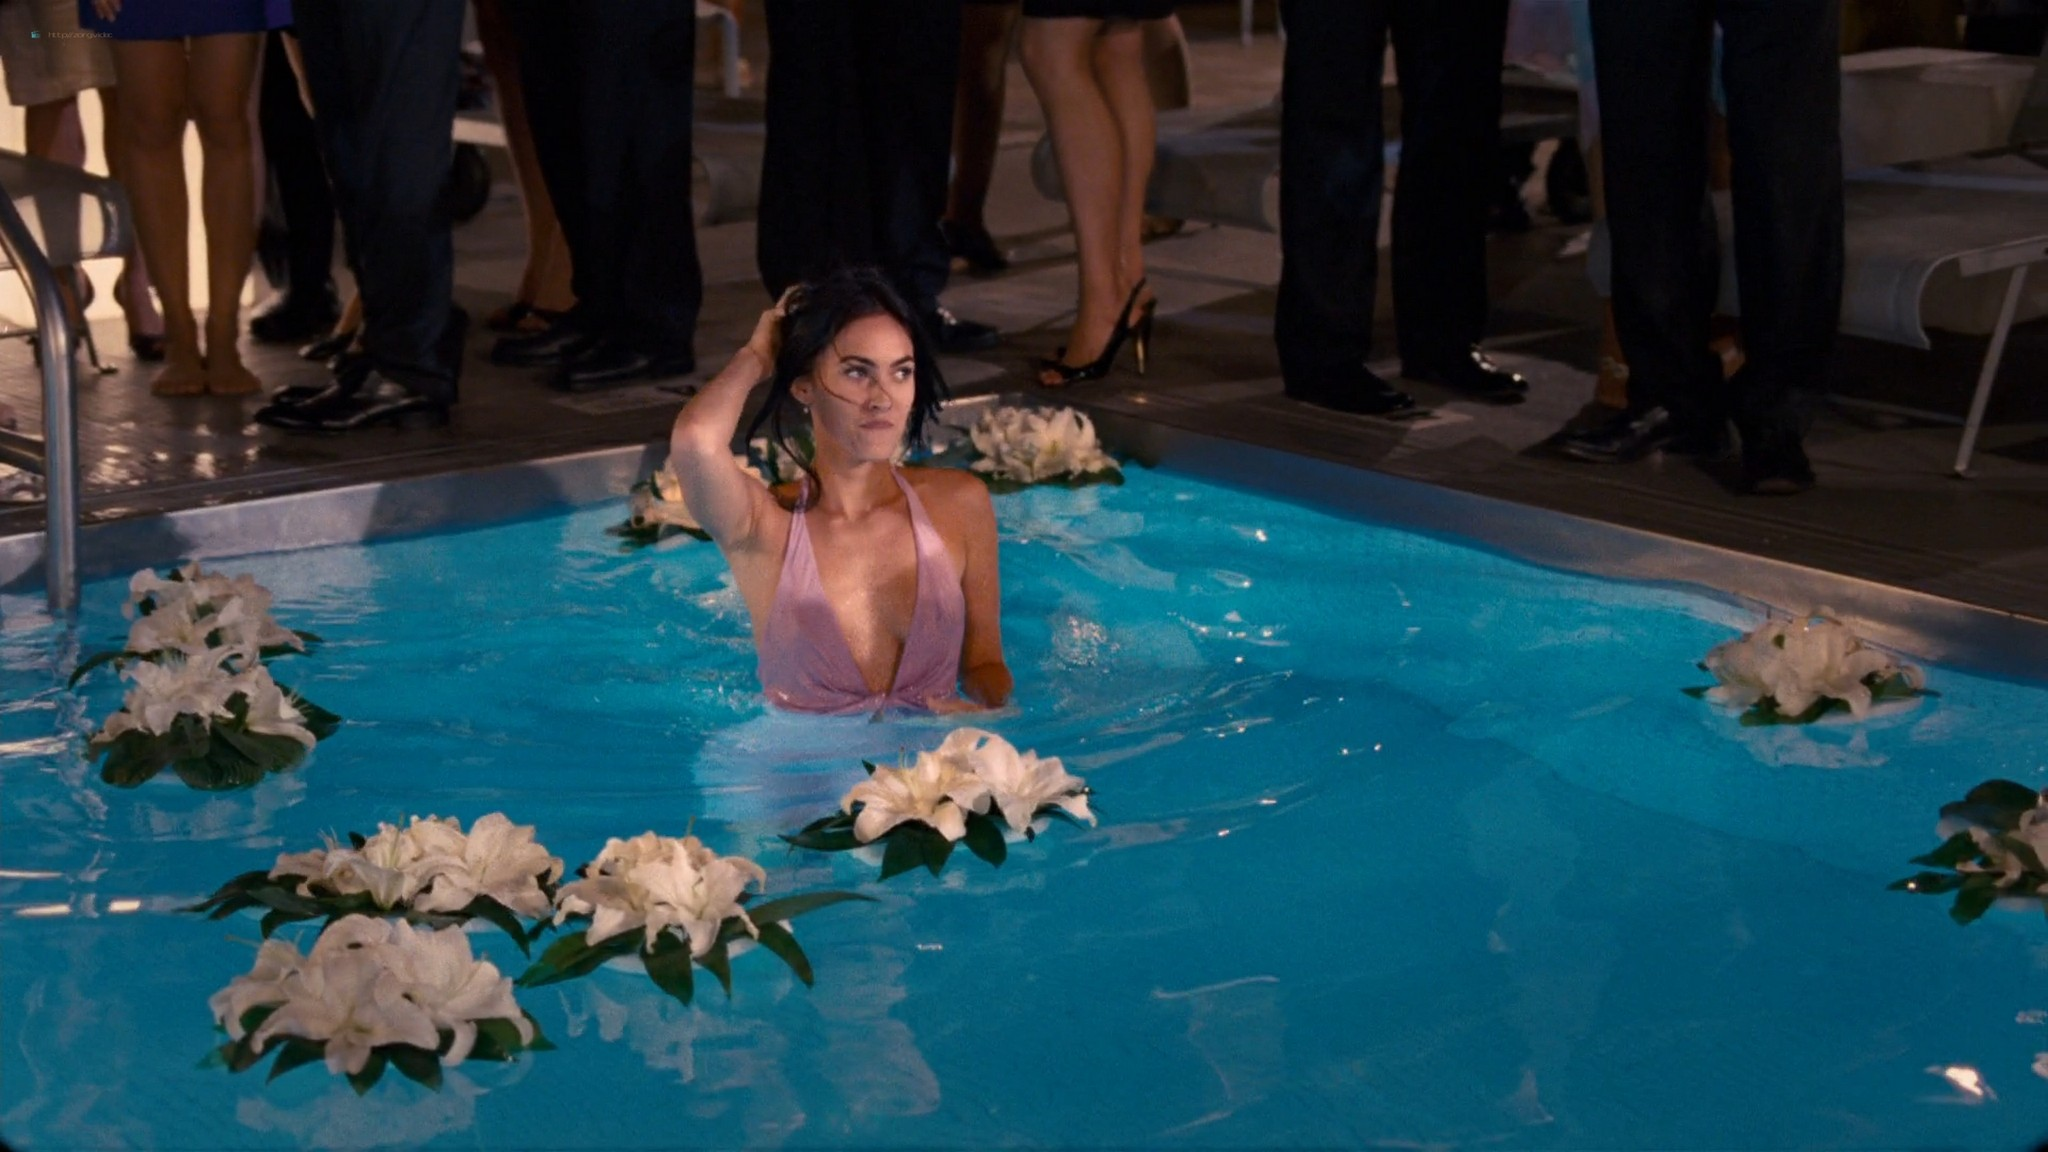 Megan Fox hot wet - How to Lose Friends and Alienate People (2008) HD 1080p BluRay (19)